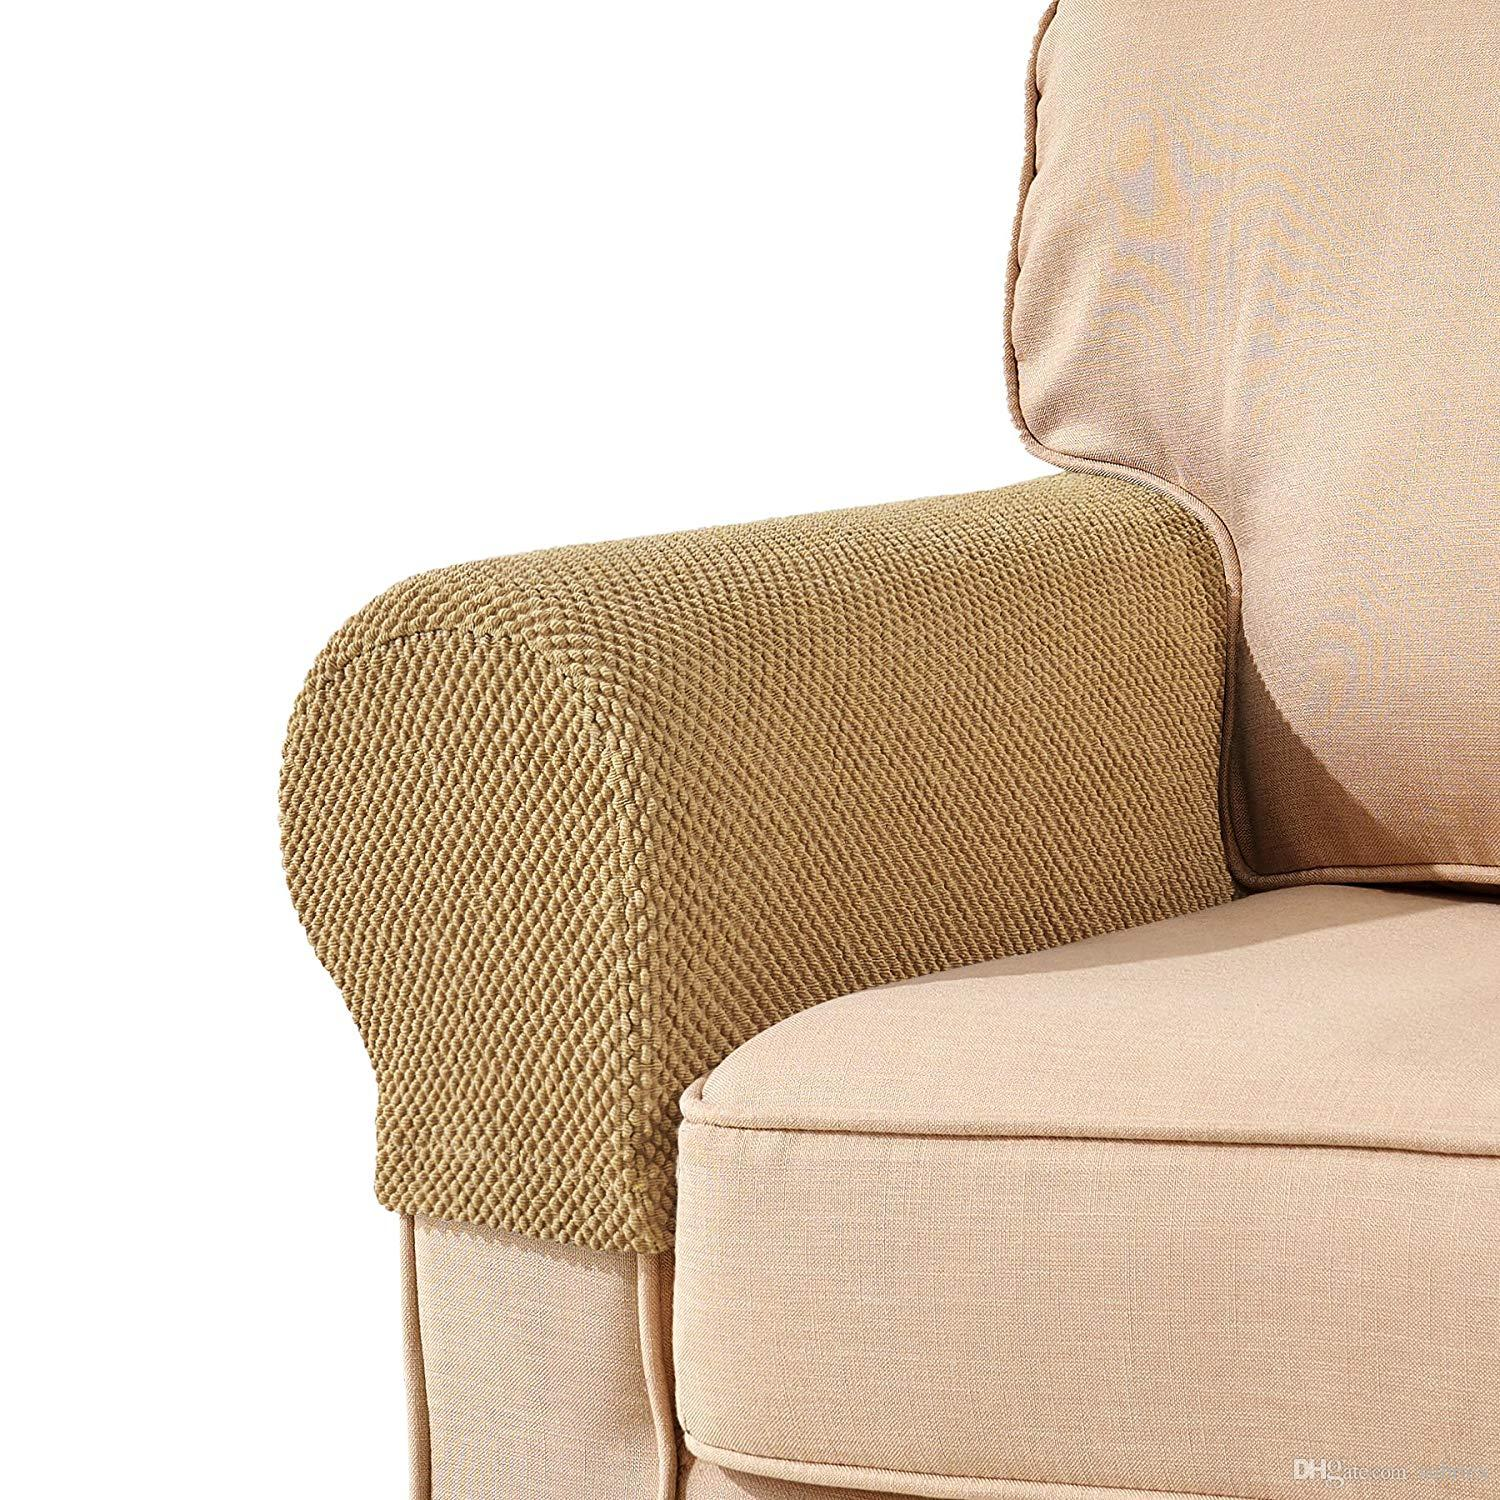 Set of 2 Spandex Stretch Armrest Cover Chair Sofa Elastic Protectors to Fit Most